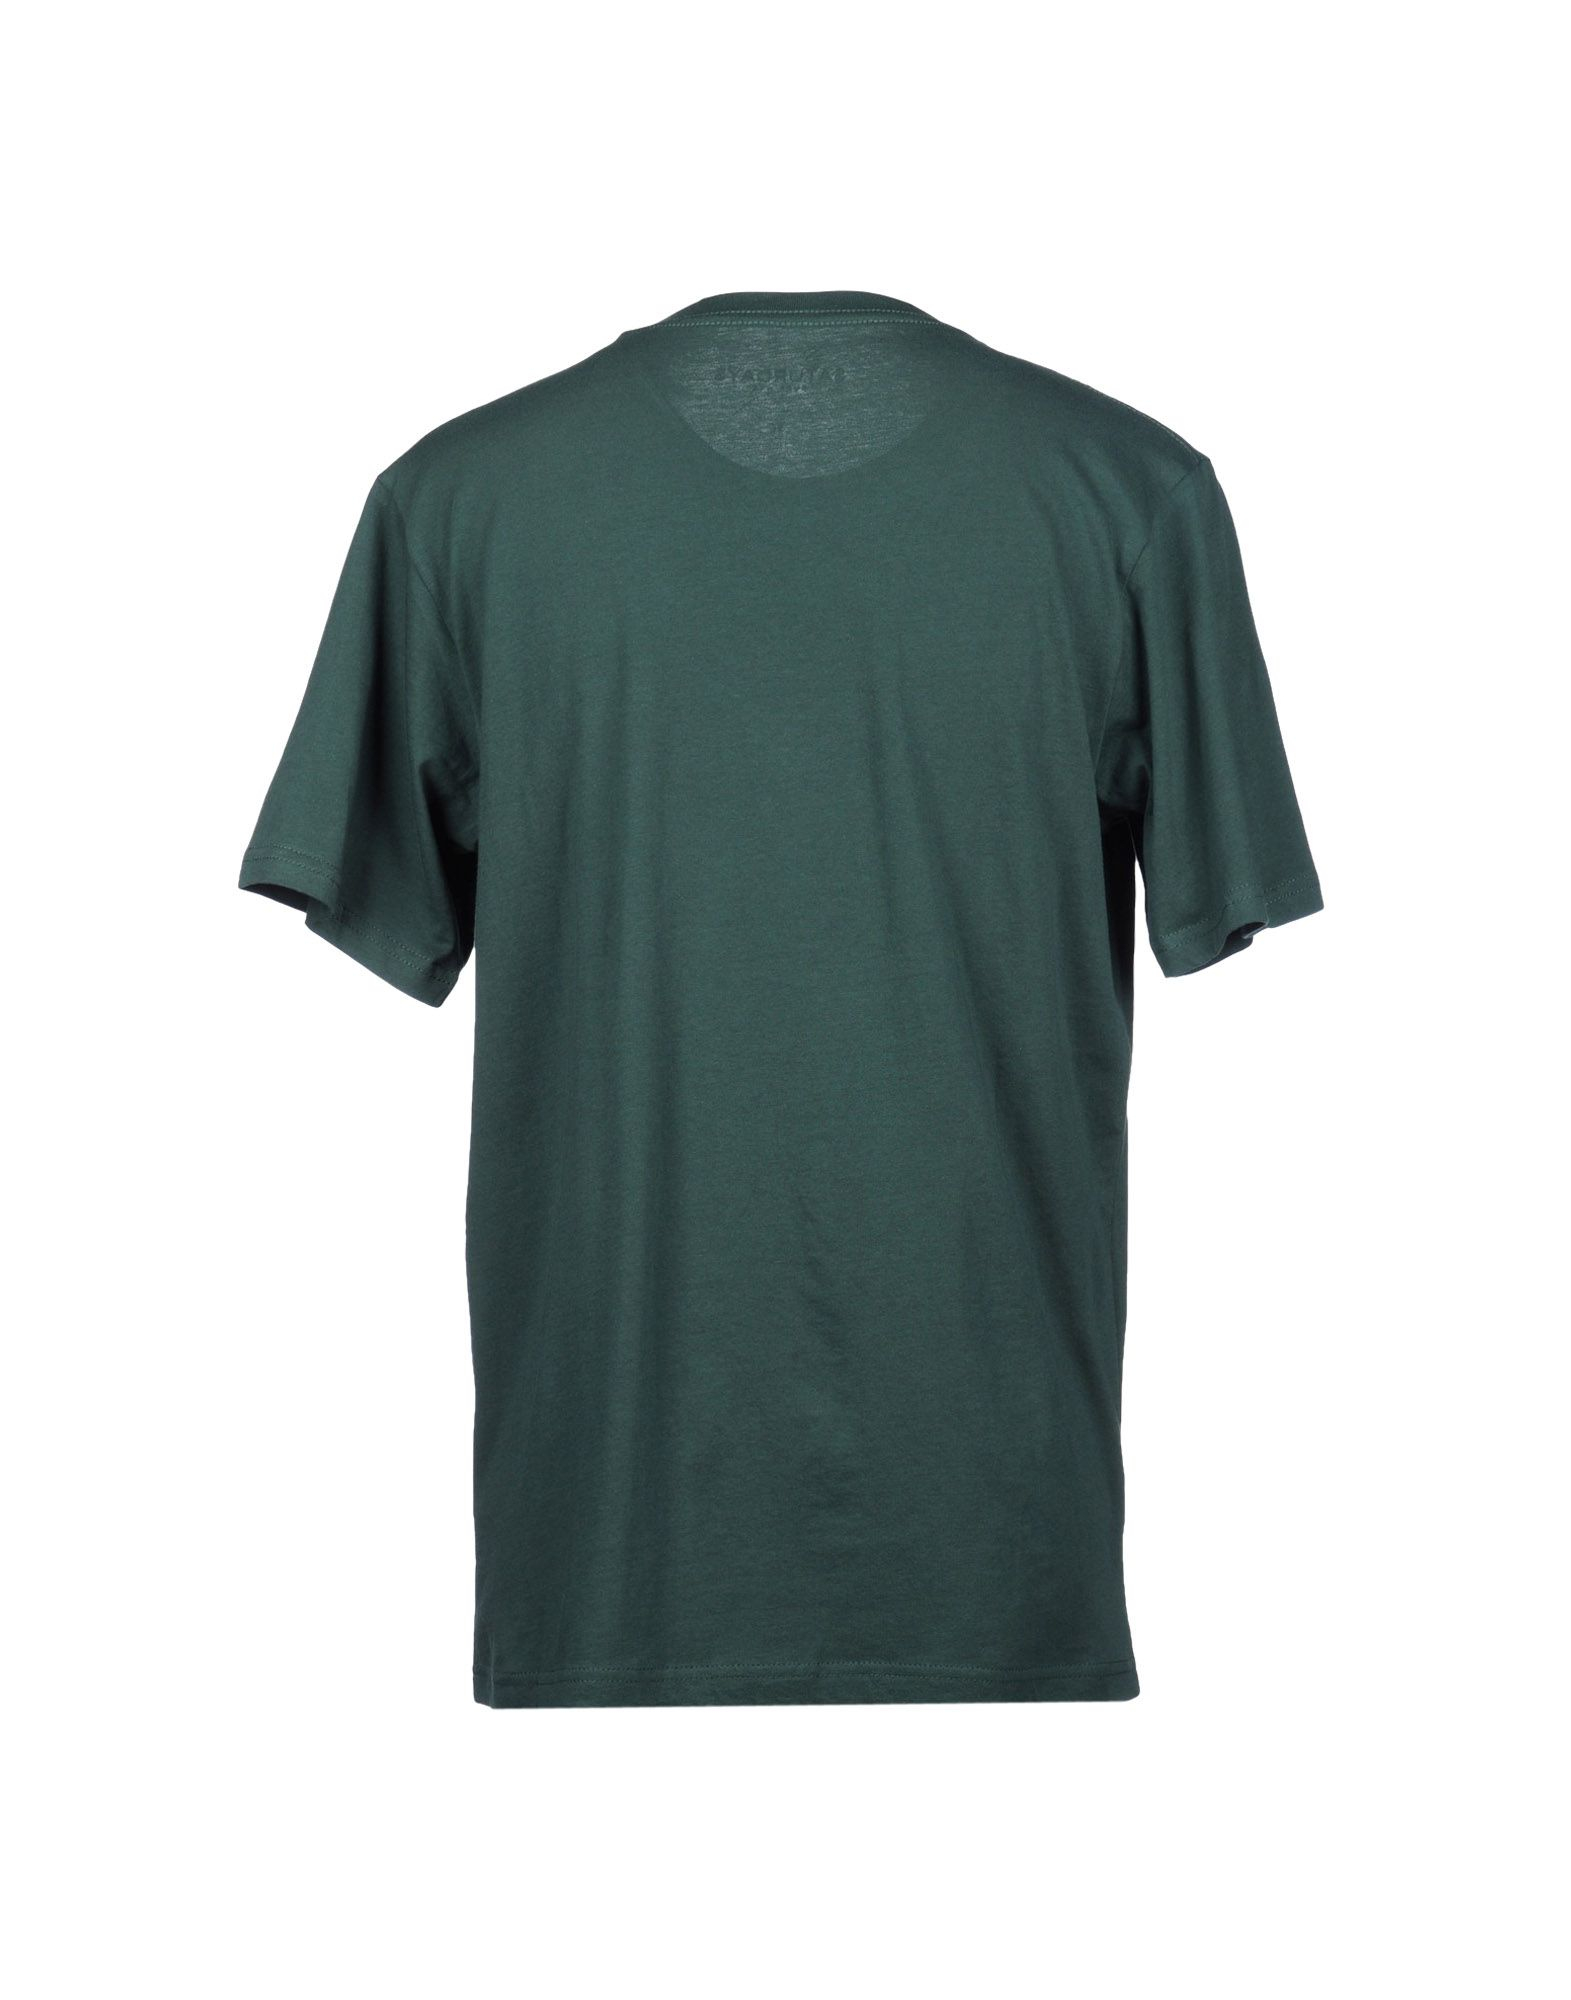 saturdays nyc t shirt in green for men lyst